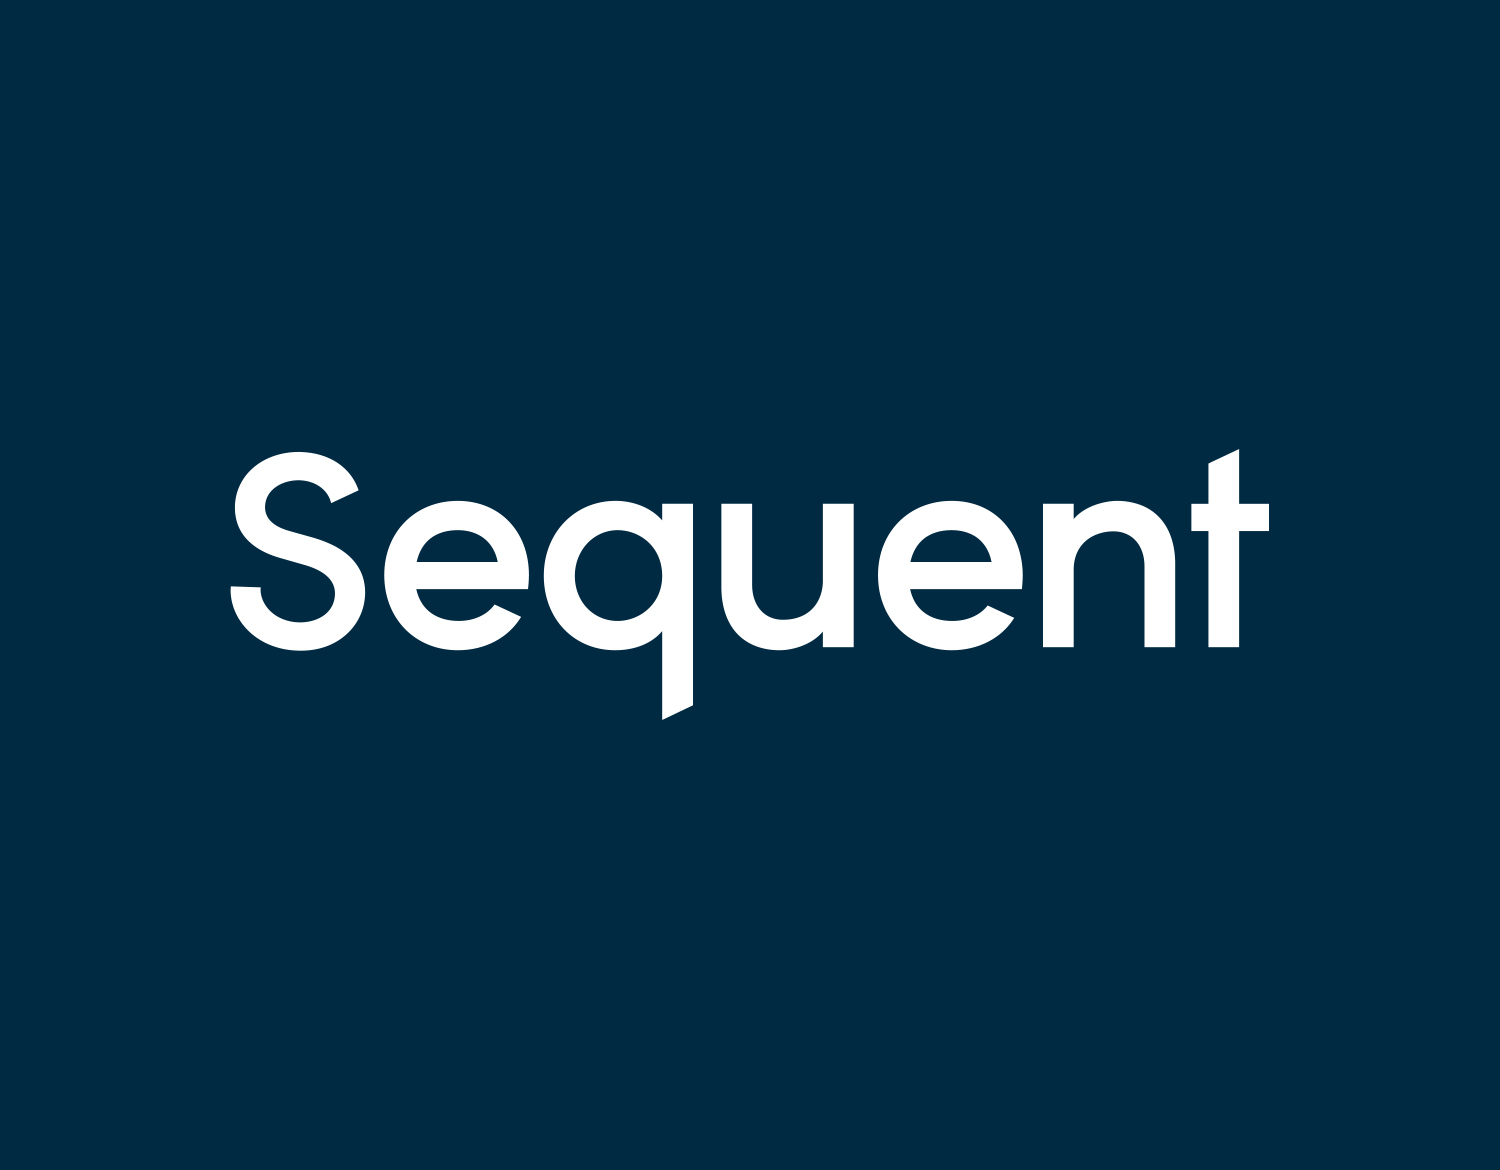 Sequent - Prepared for change